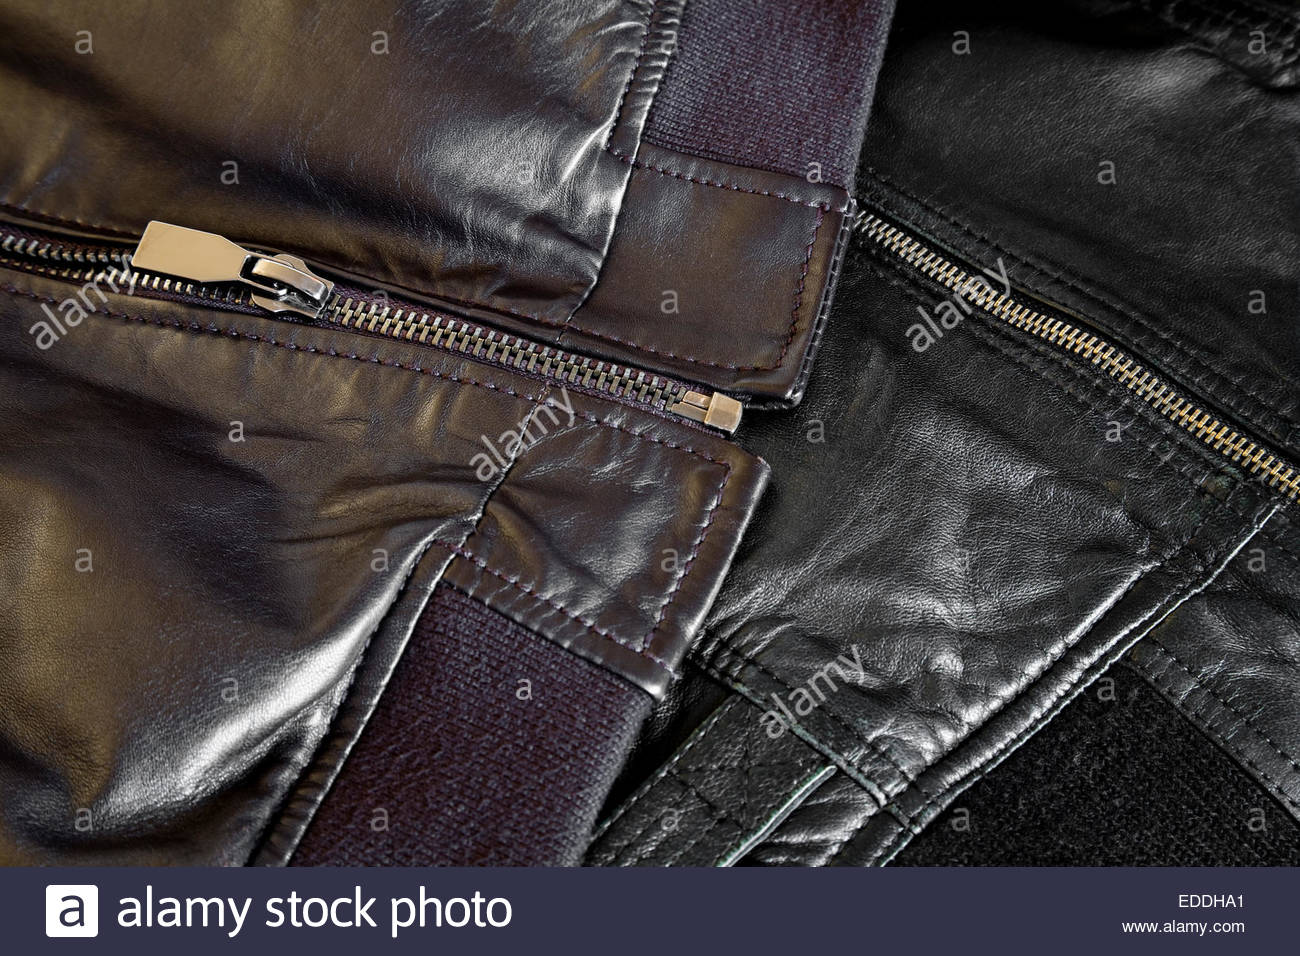 Stitching and zippers in leather jackets - Stock Image